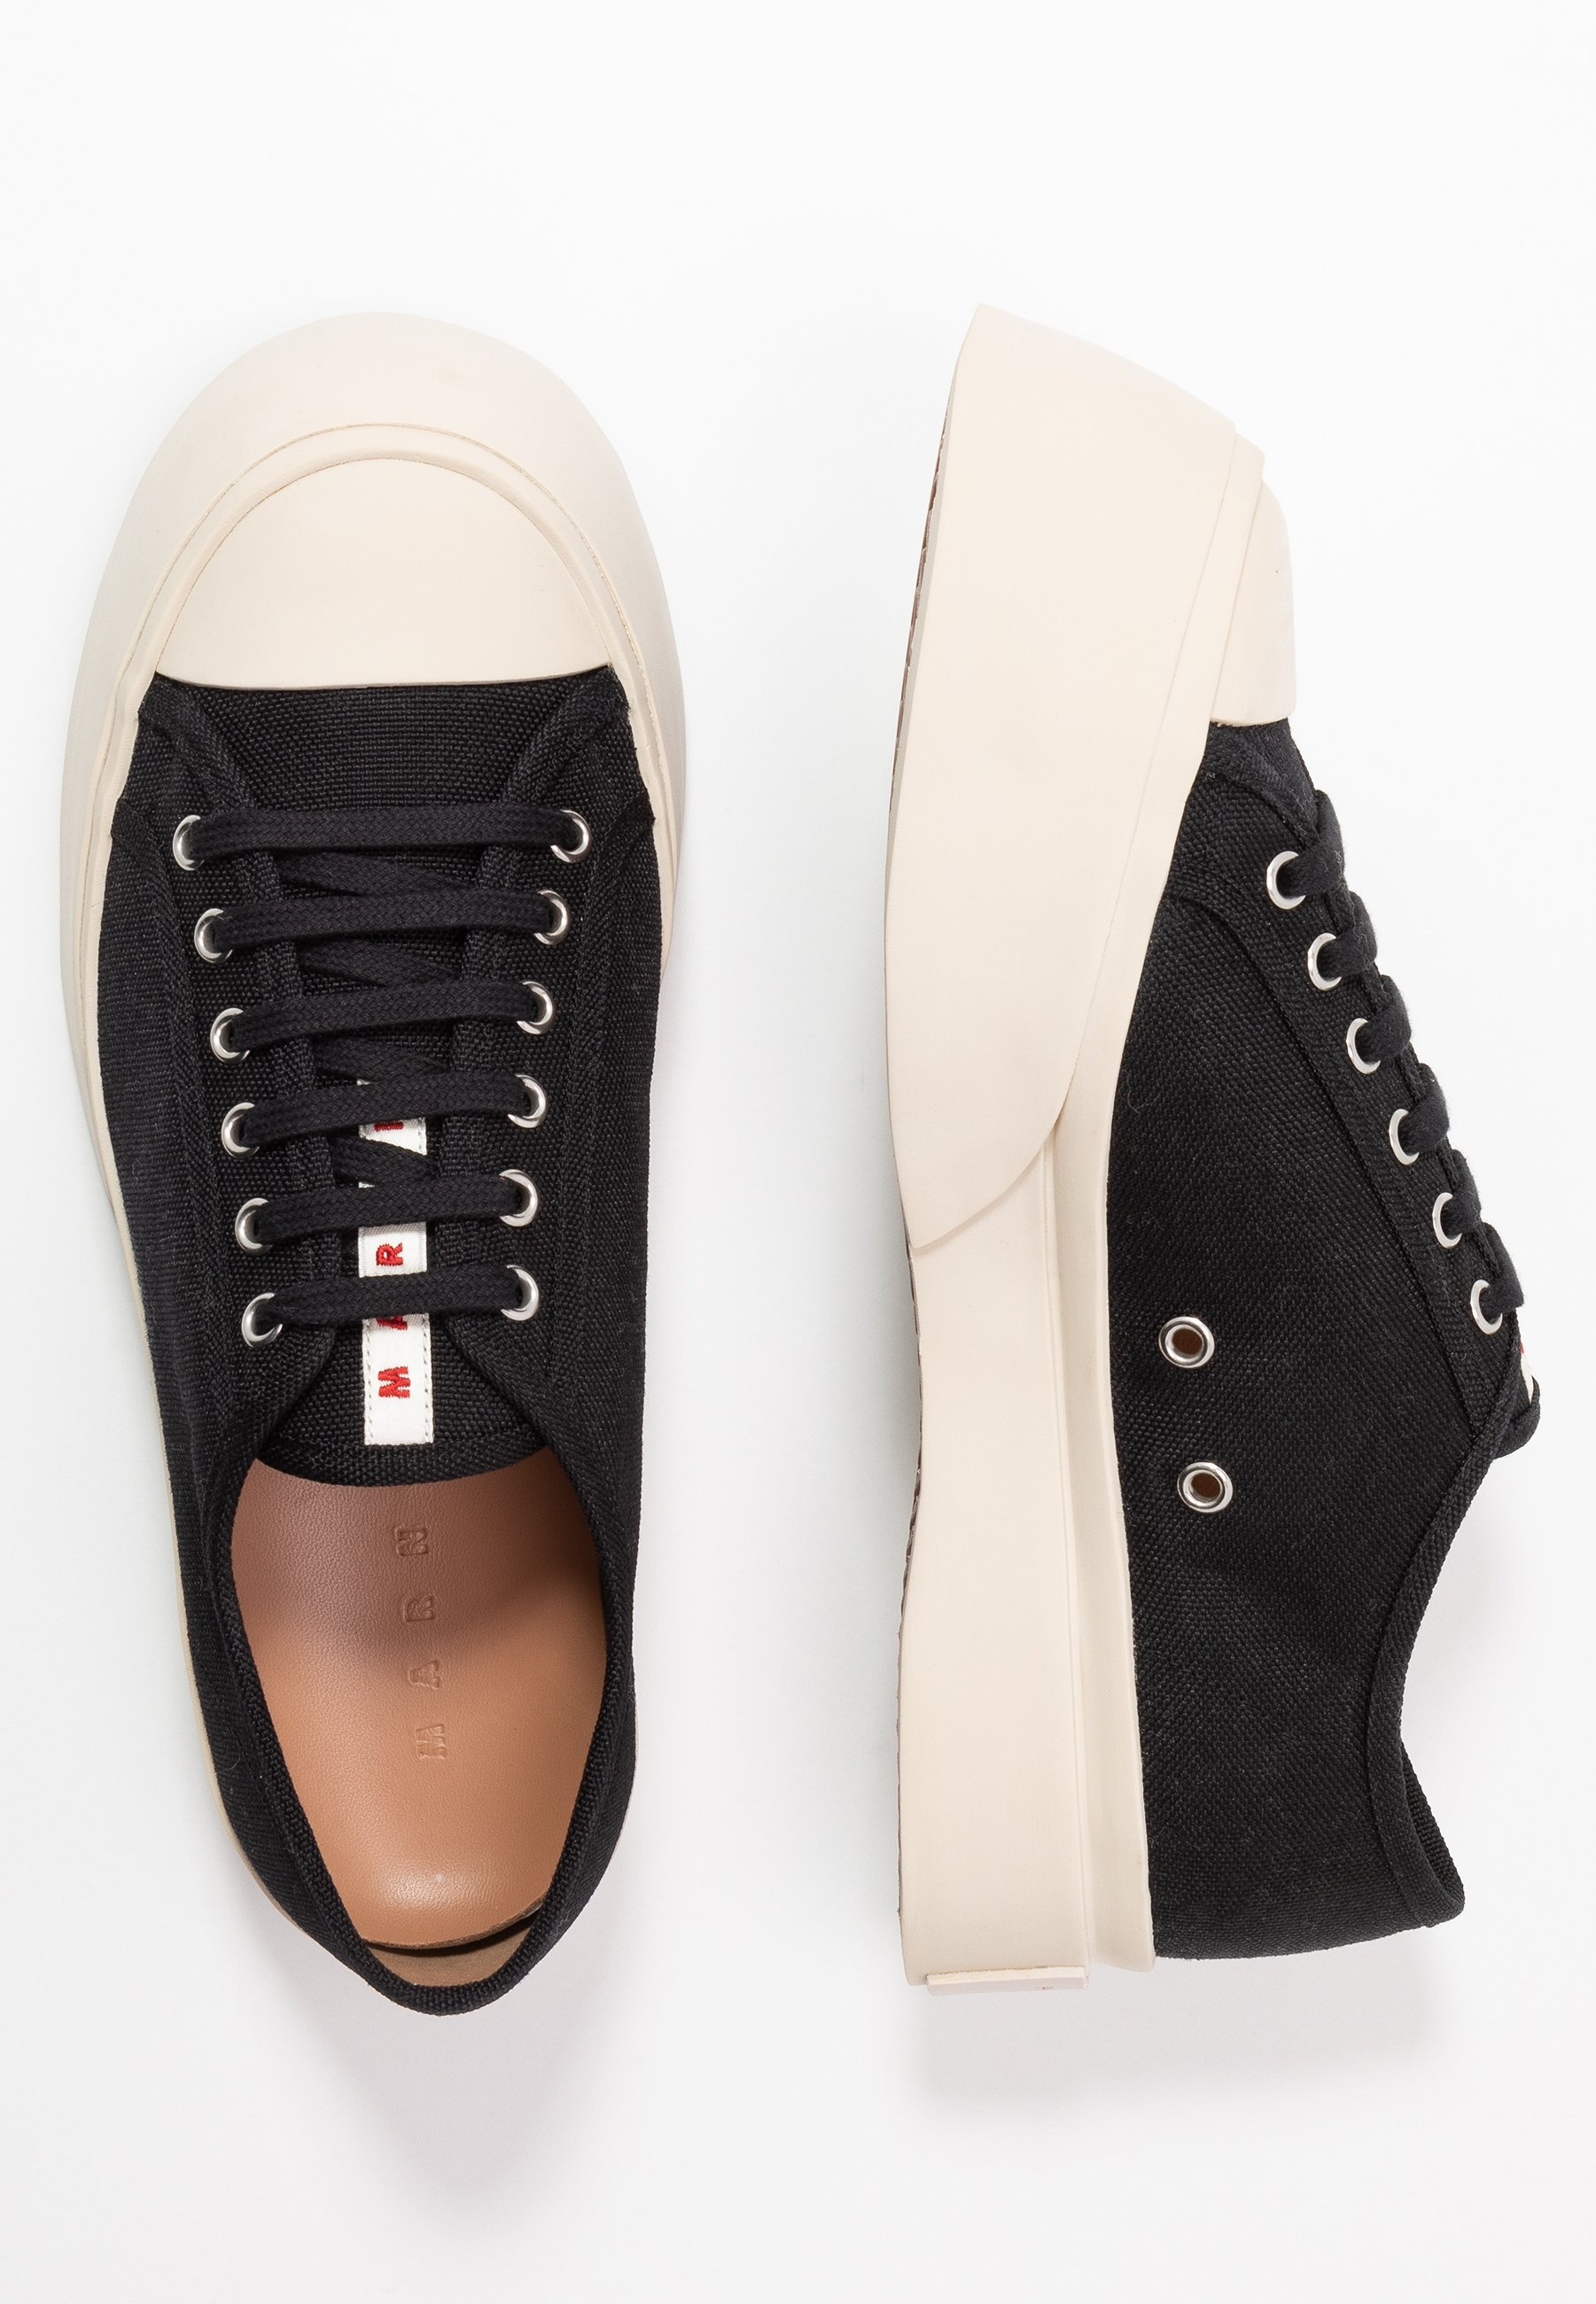 Marni Sneakers - black